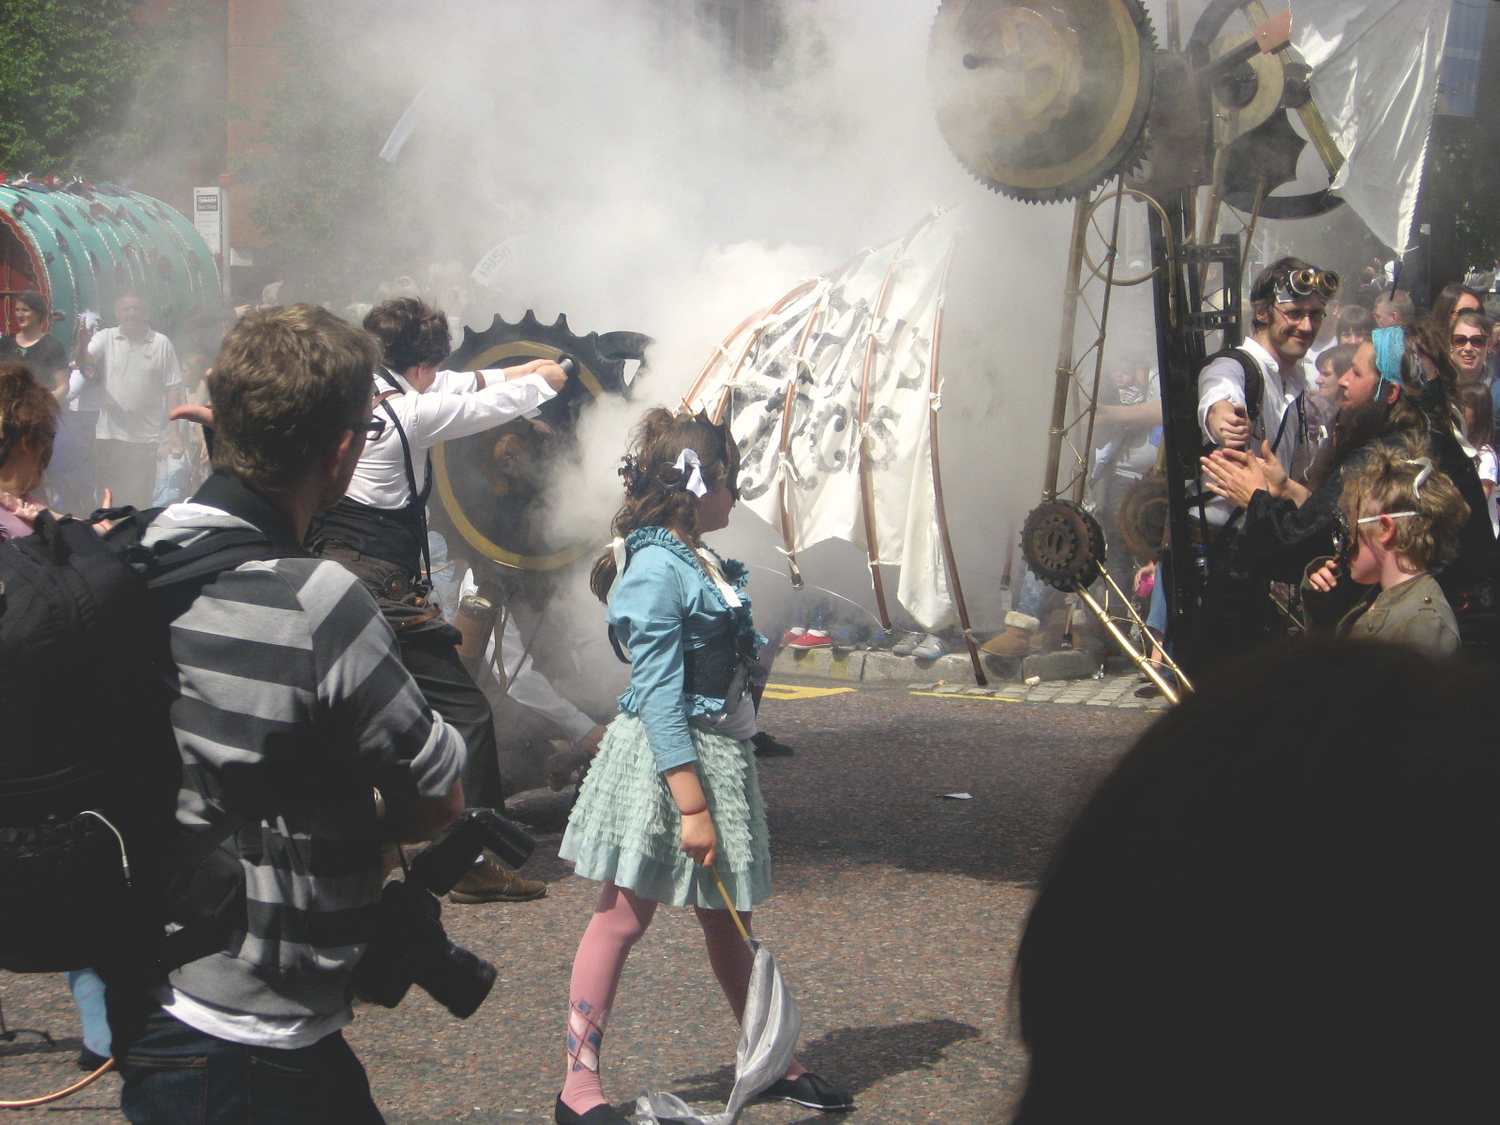 Smoke and steam at Manchester Day Parade